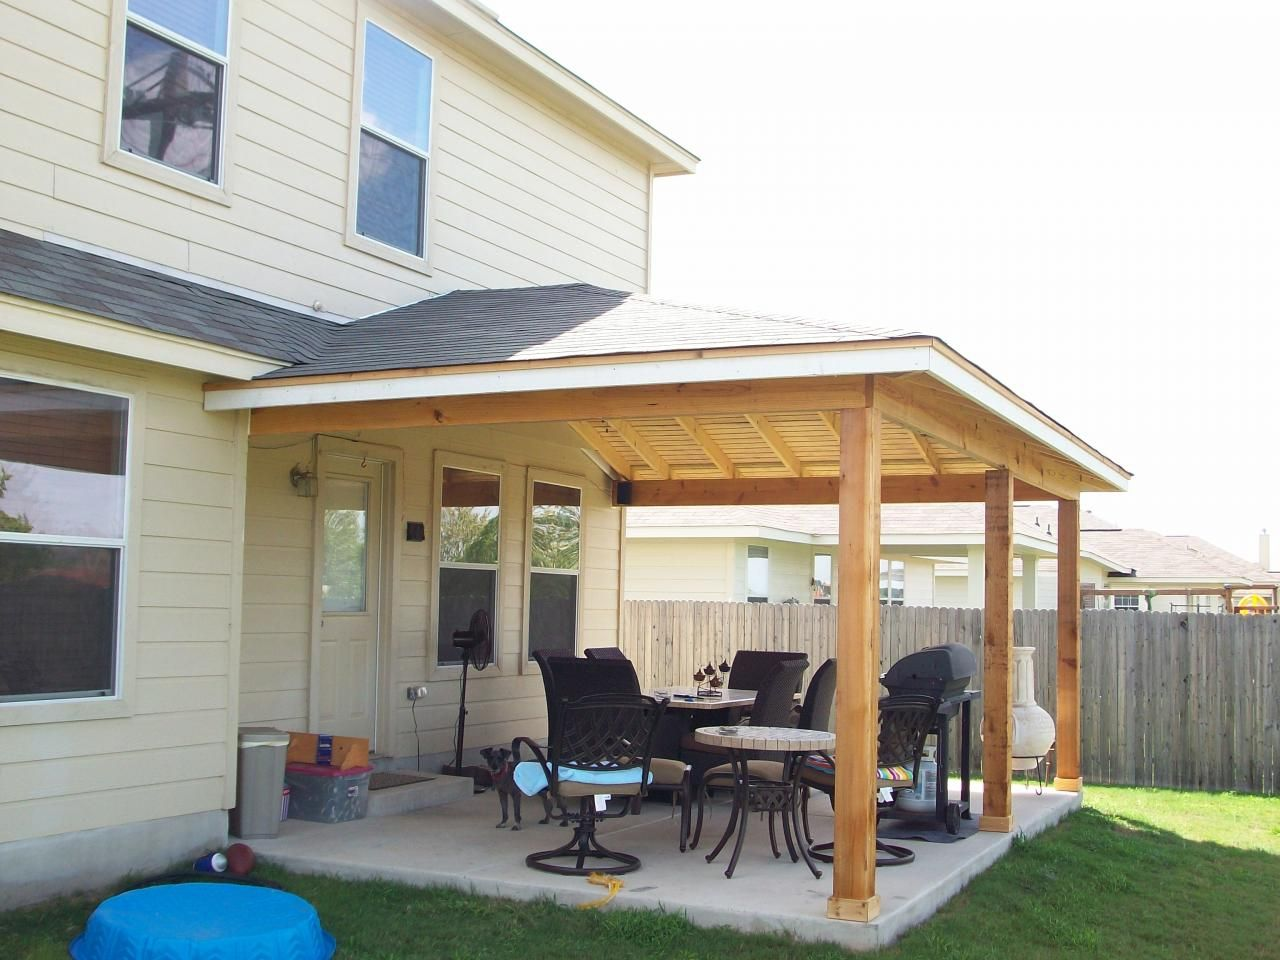 Back porch roof ideas - Patio Designs Patio Covers Pictures Video Plans Designs Ideas Free Patio Cover